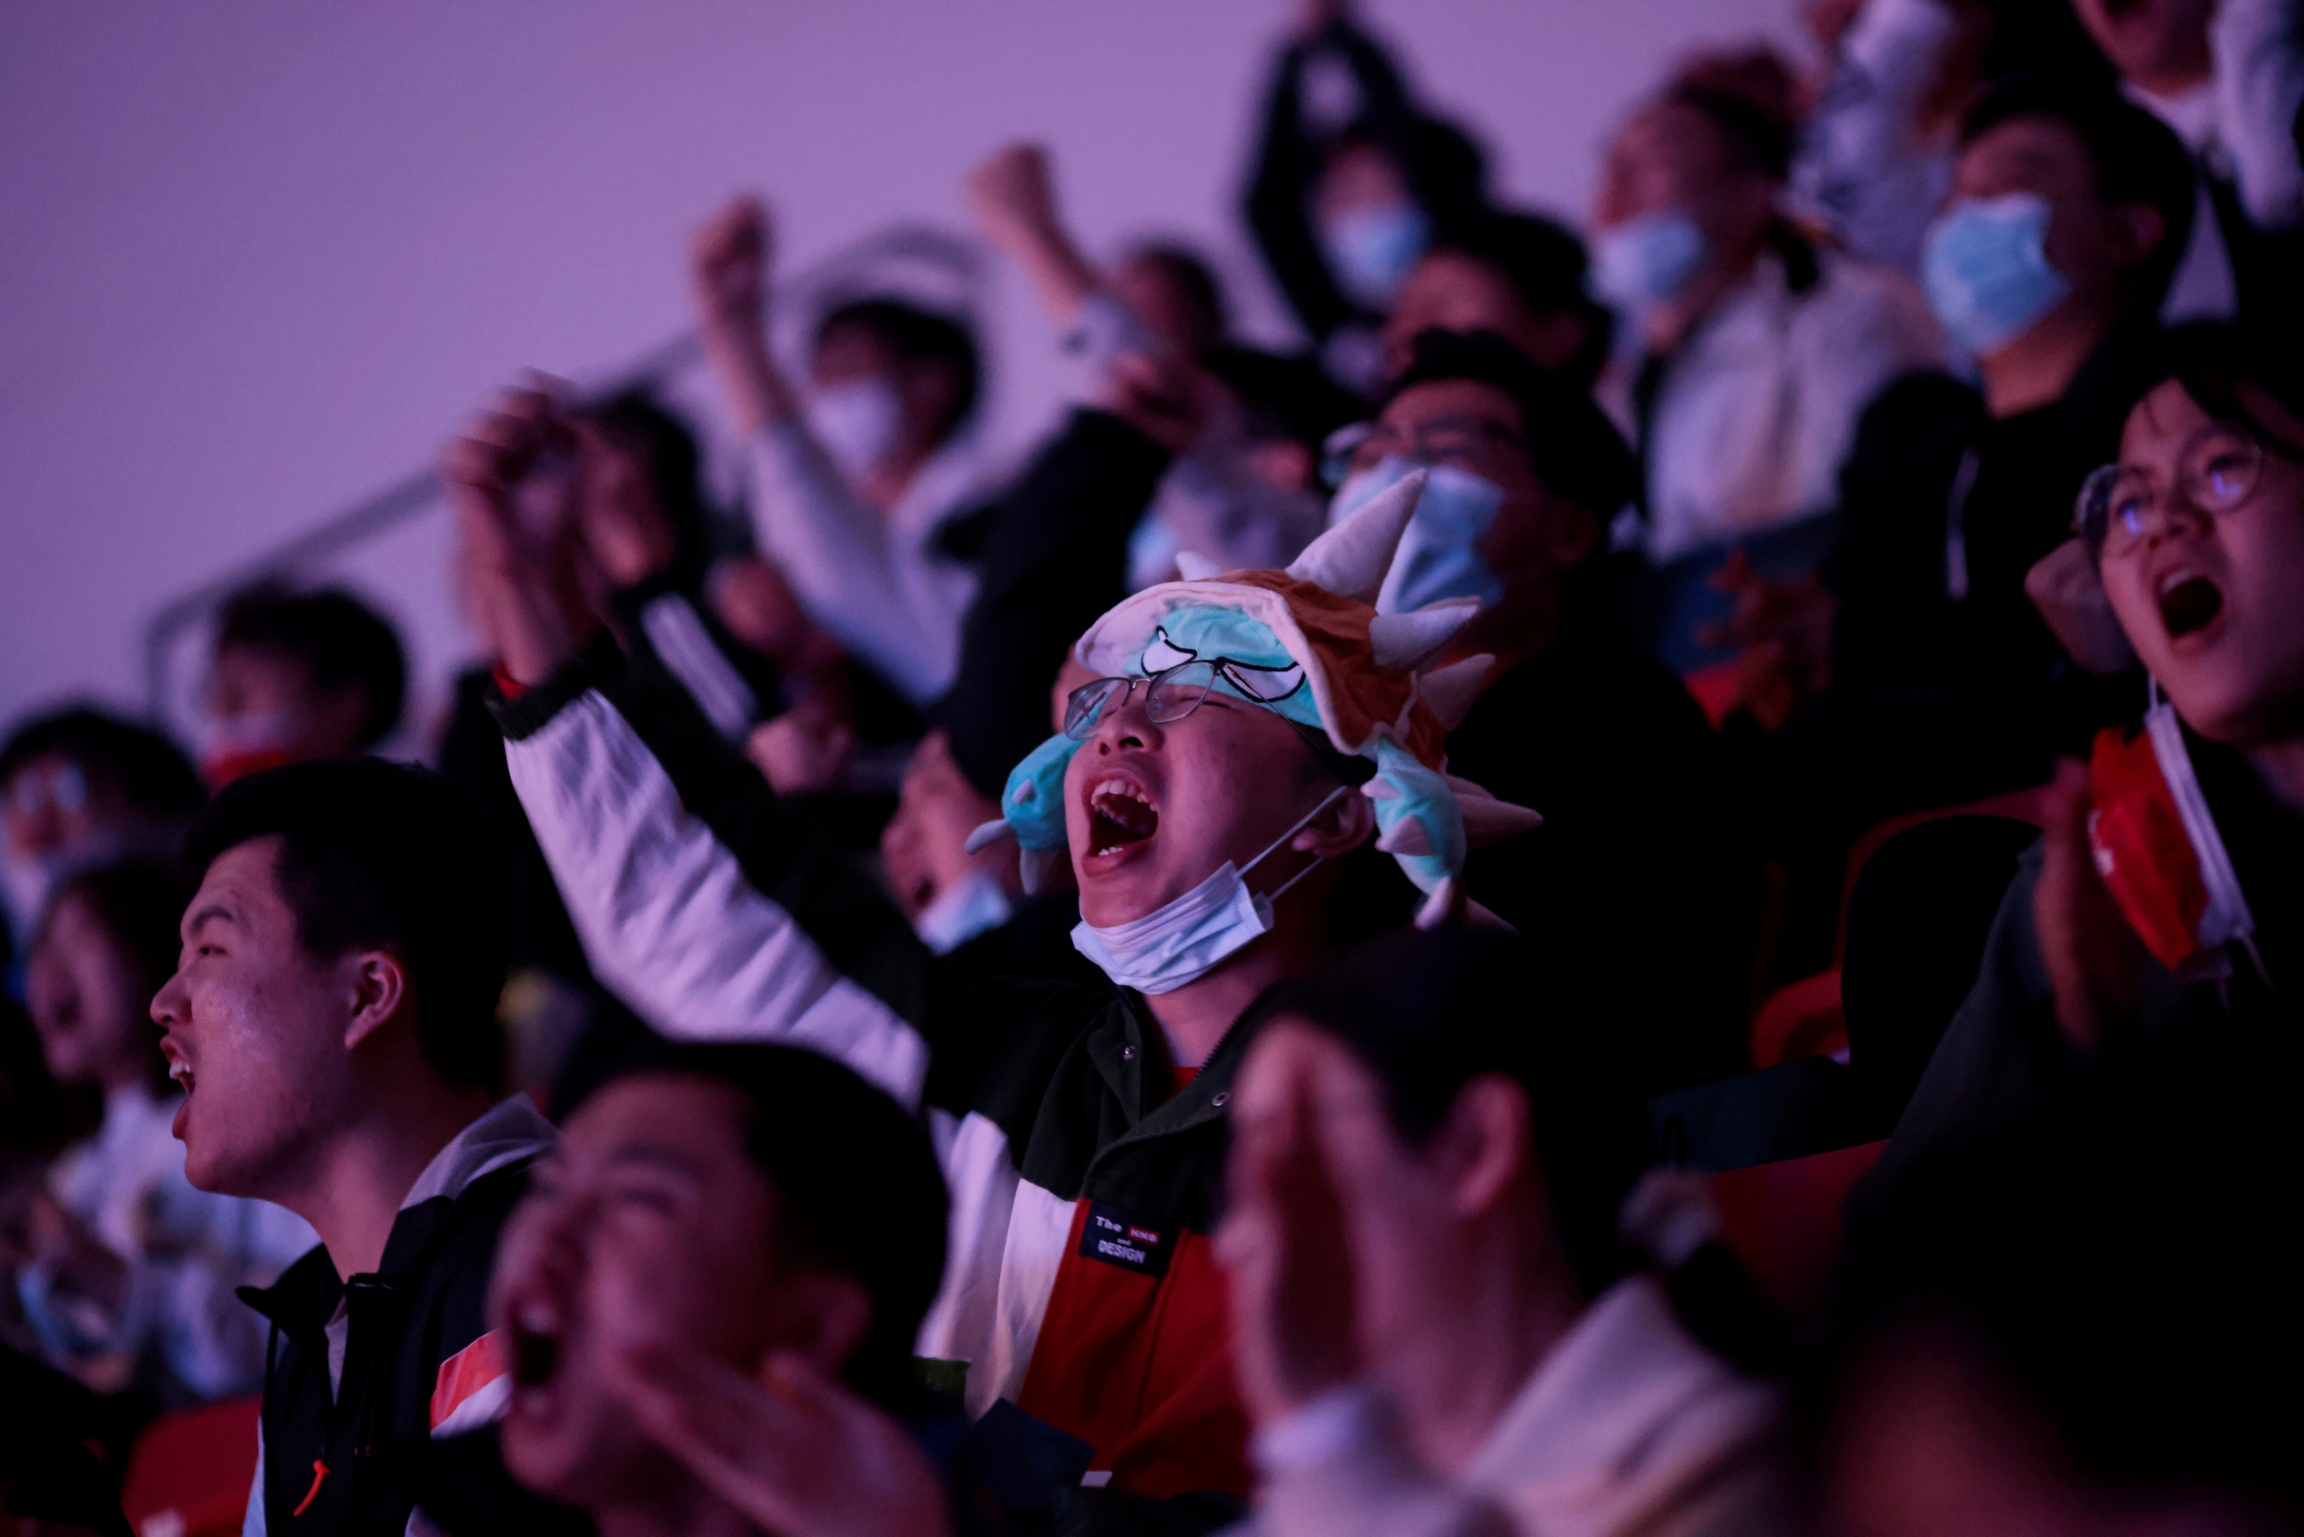 Fans react at the League of Legends (LOL) World Championship Finals, in Shanghai.